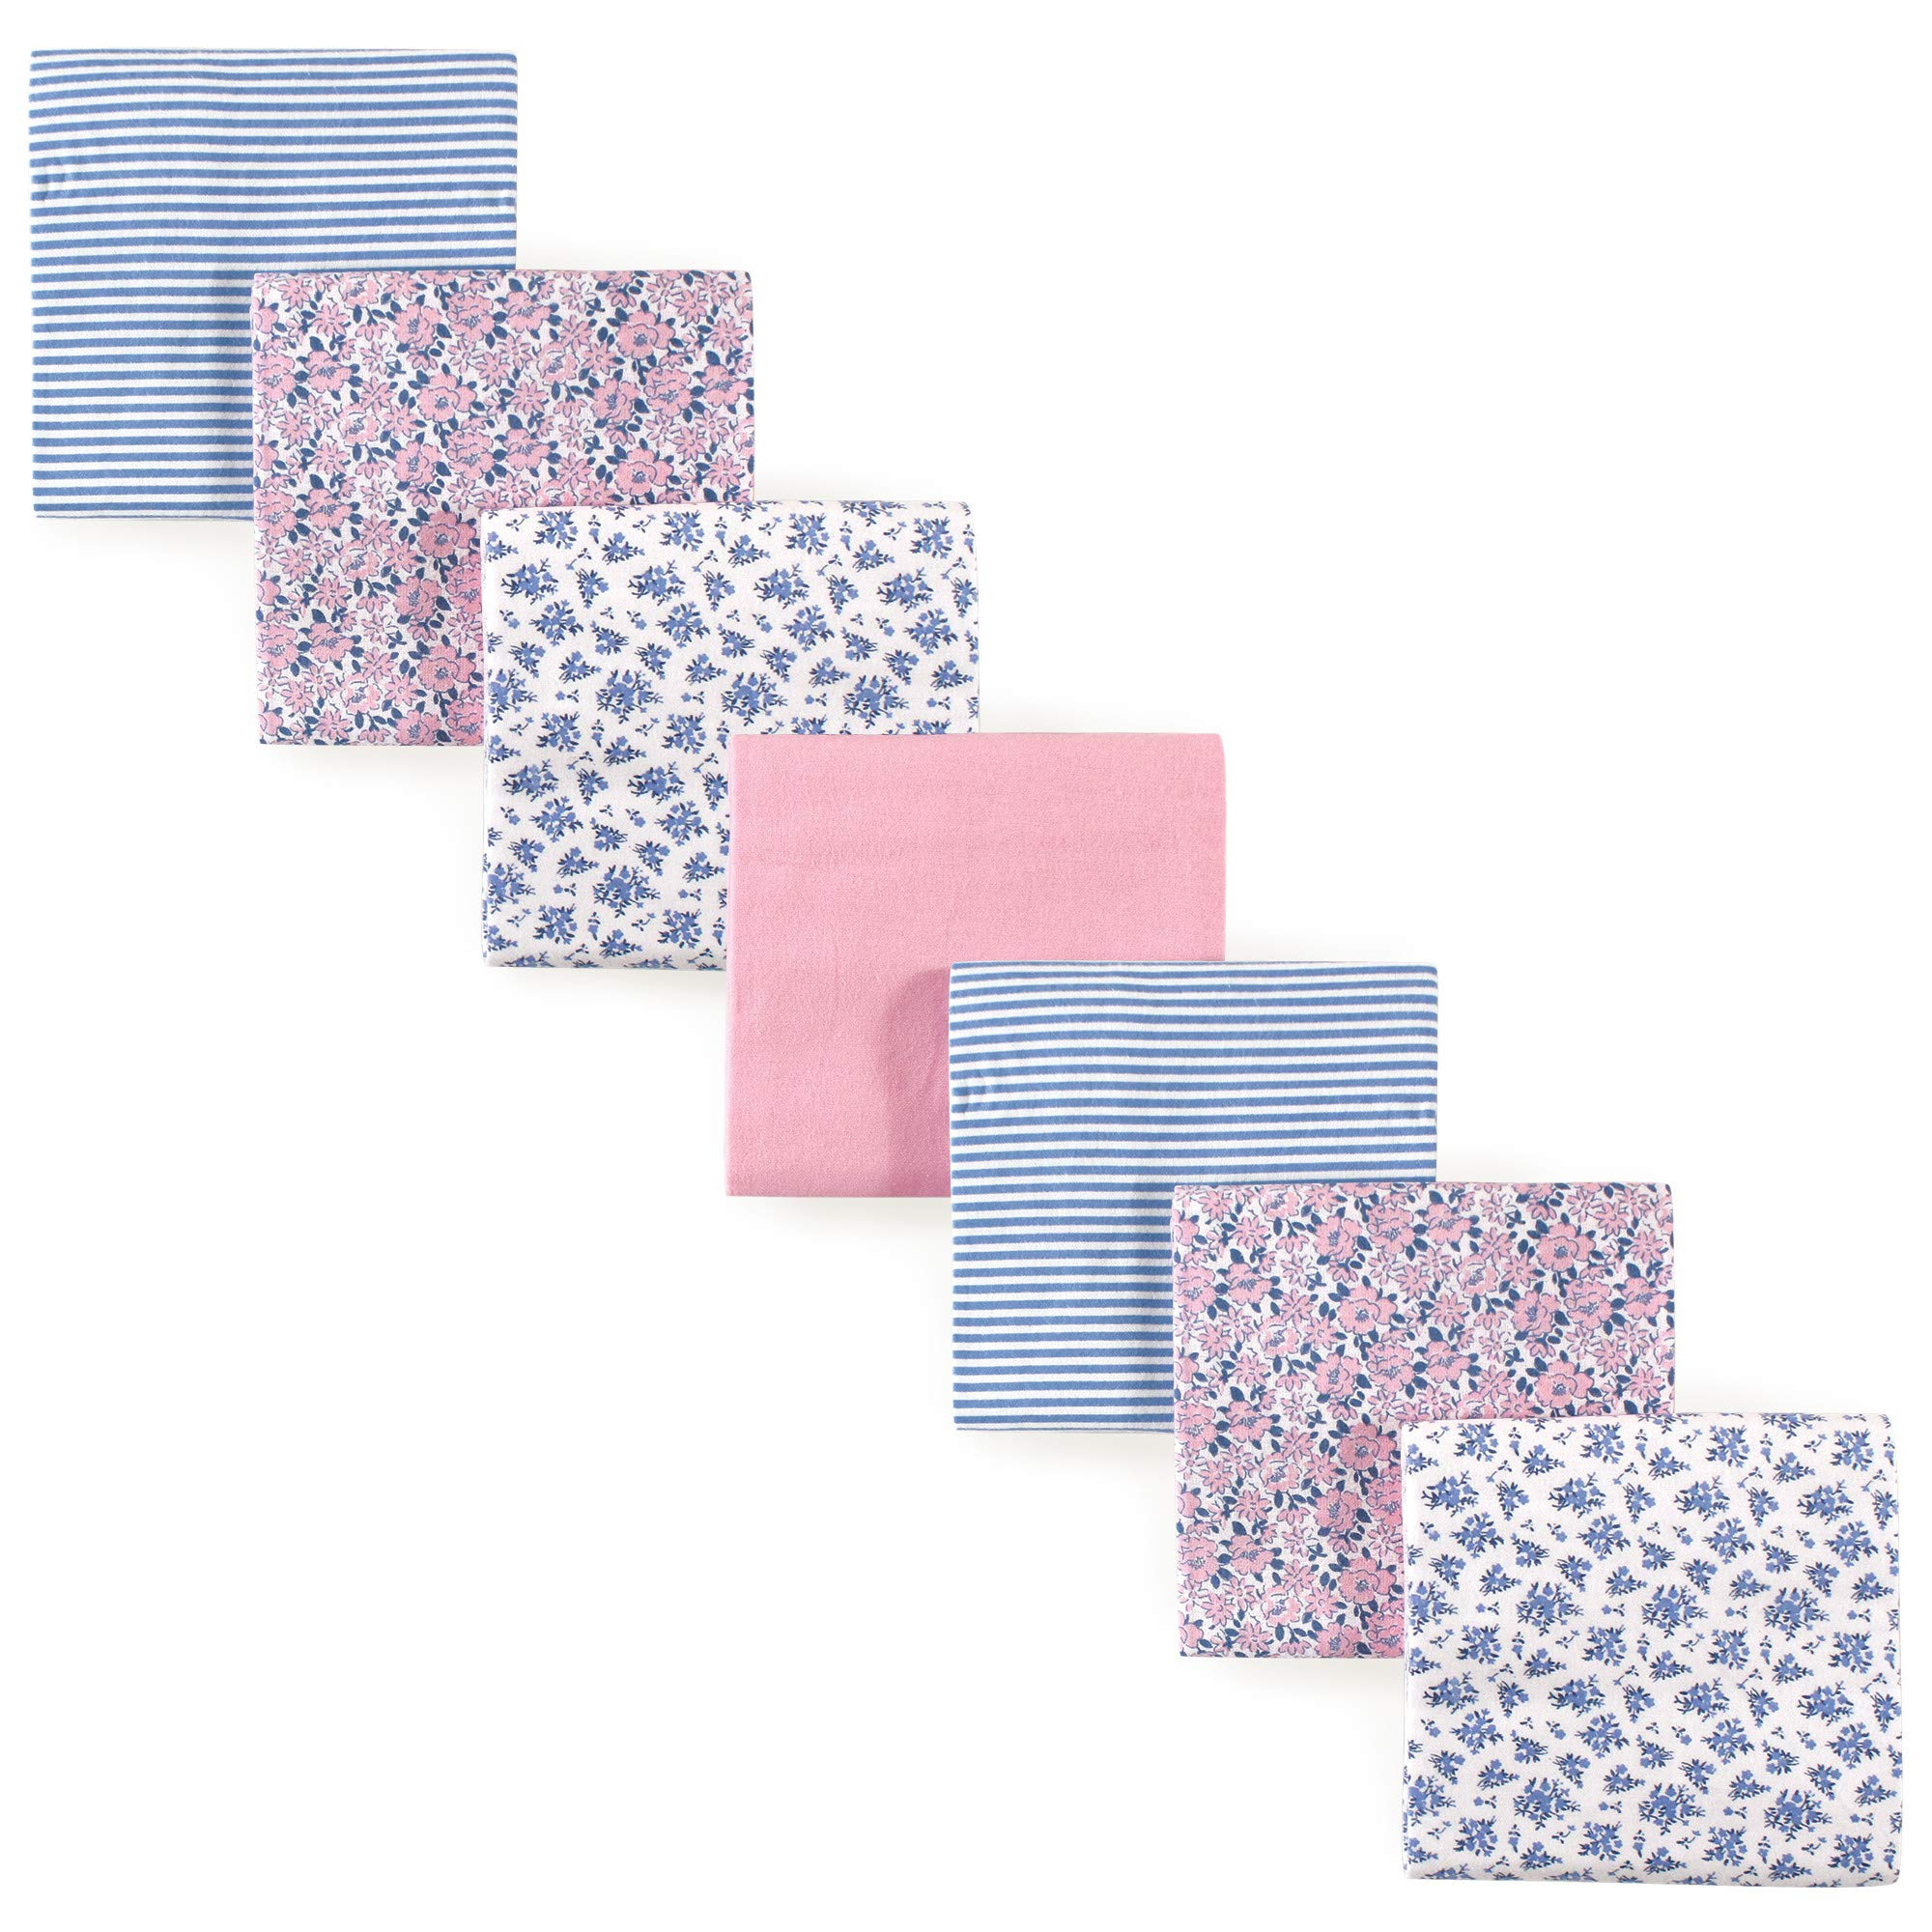 Hudson Baby 7 Piece Flannel Receiving Blanket, Classic Floral, One Size